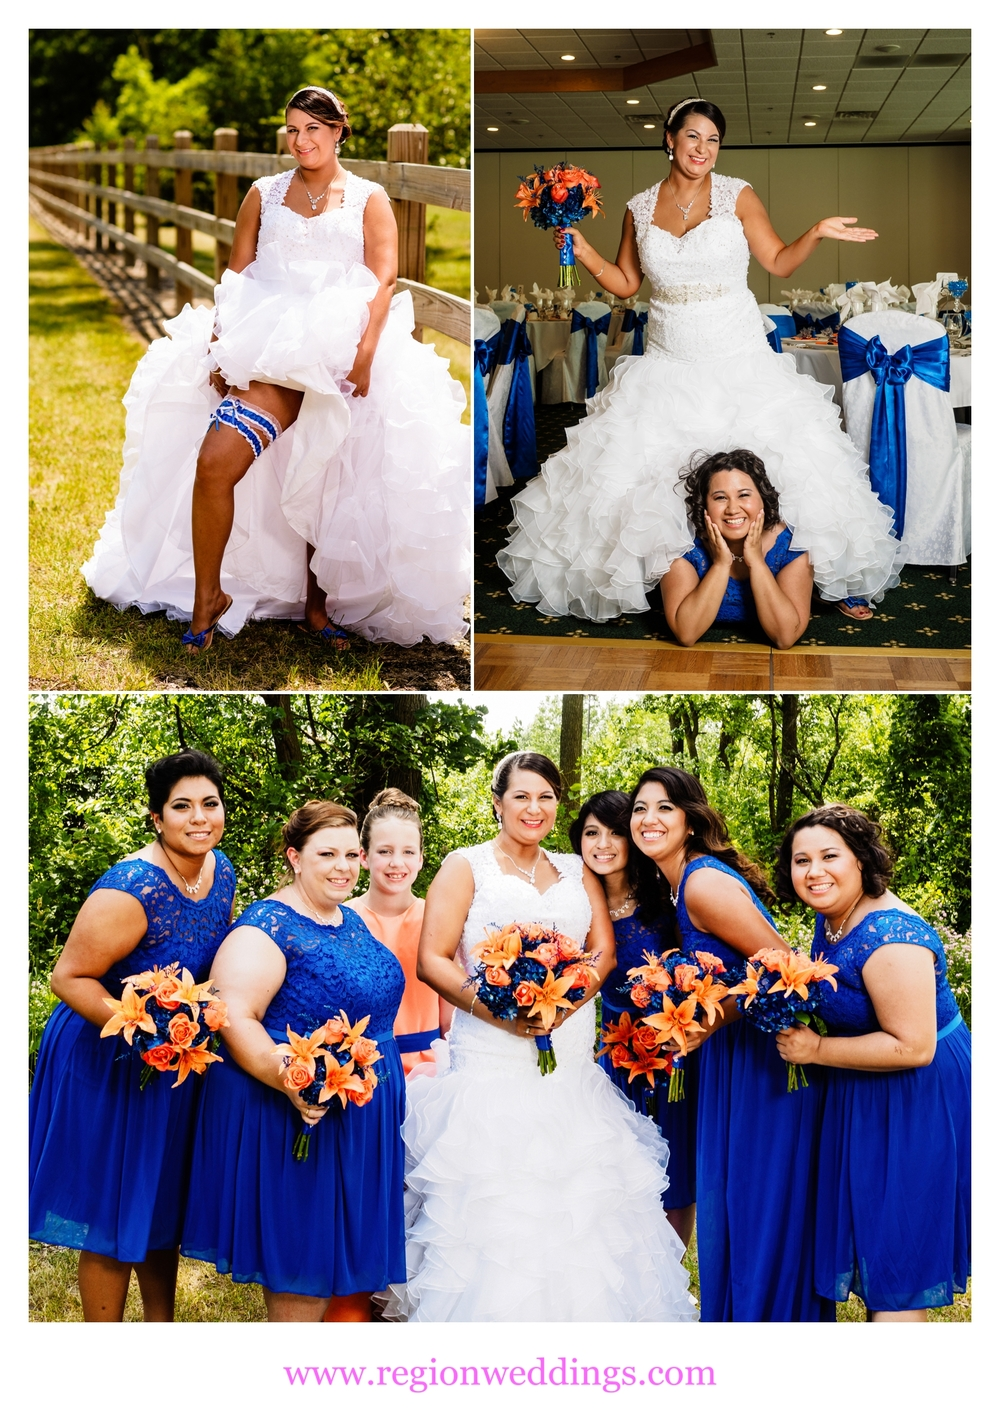 Bridesmaids in lovely blue dresses pose with the bride.